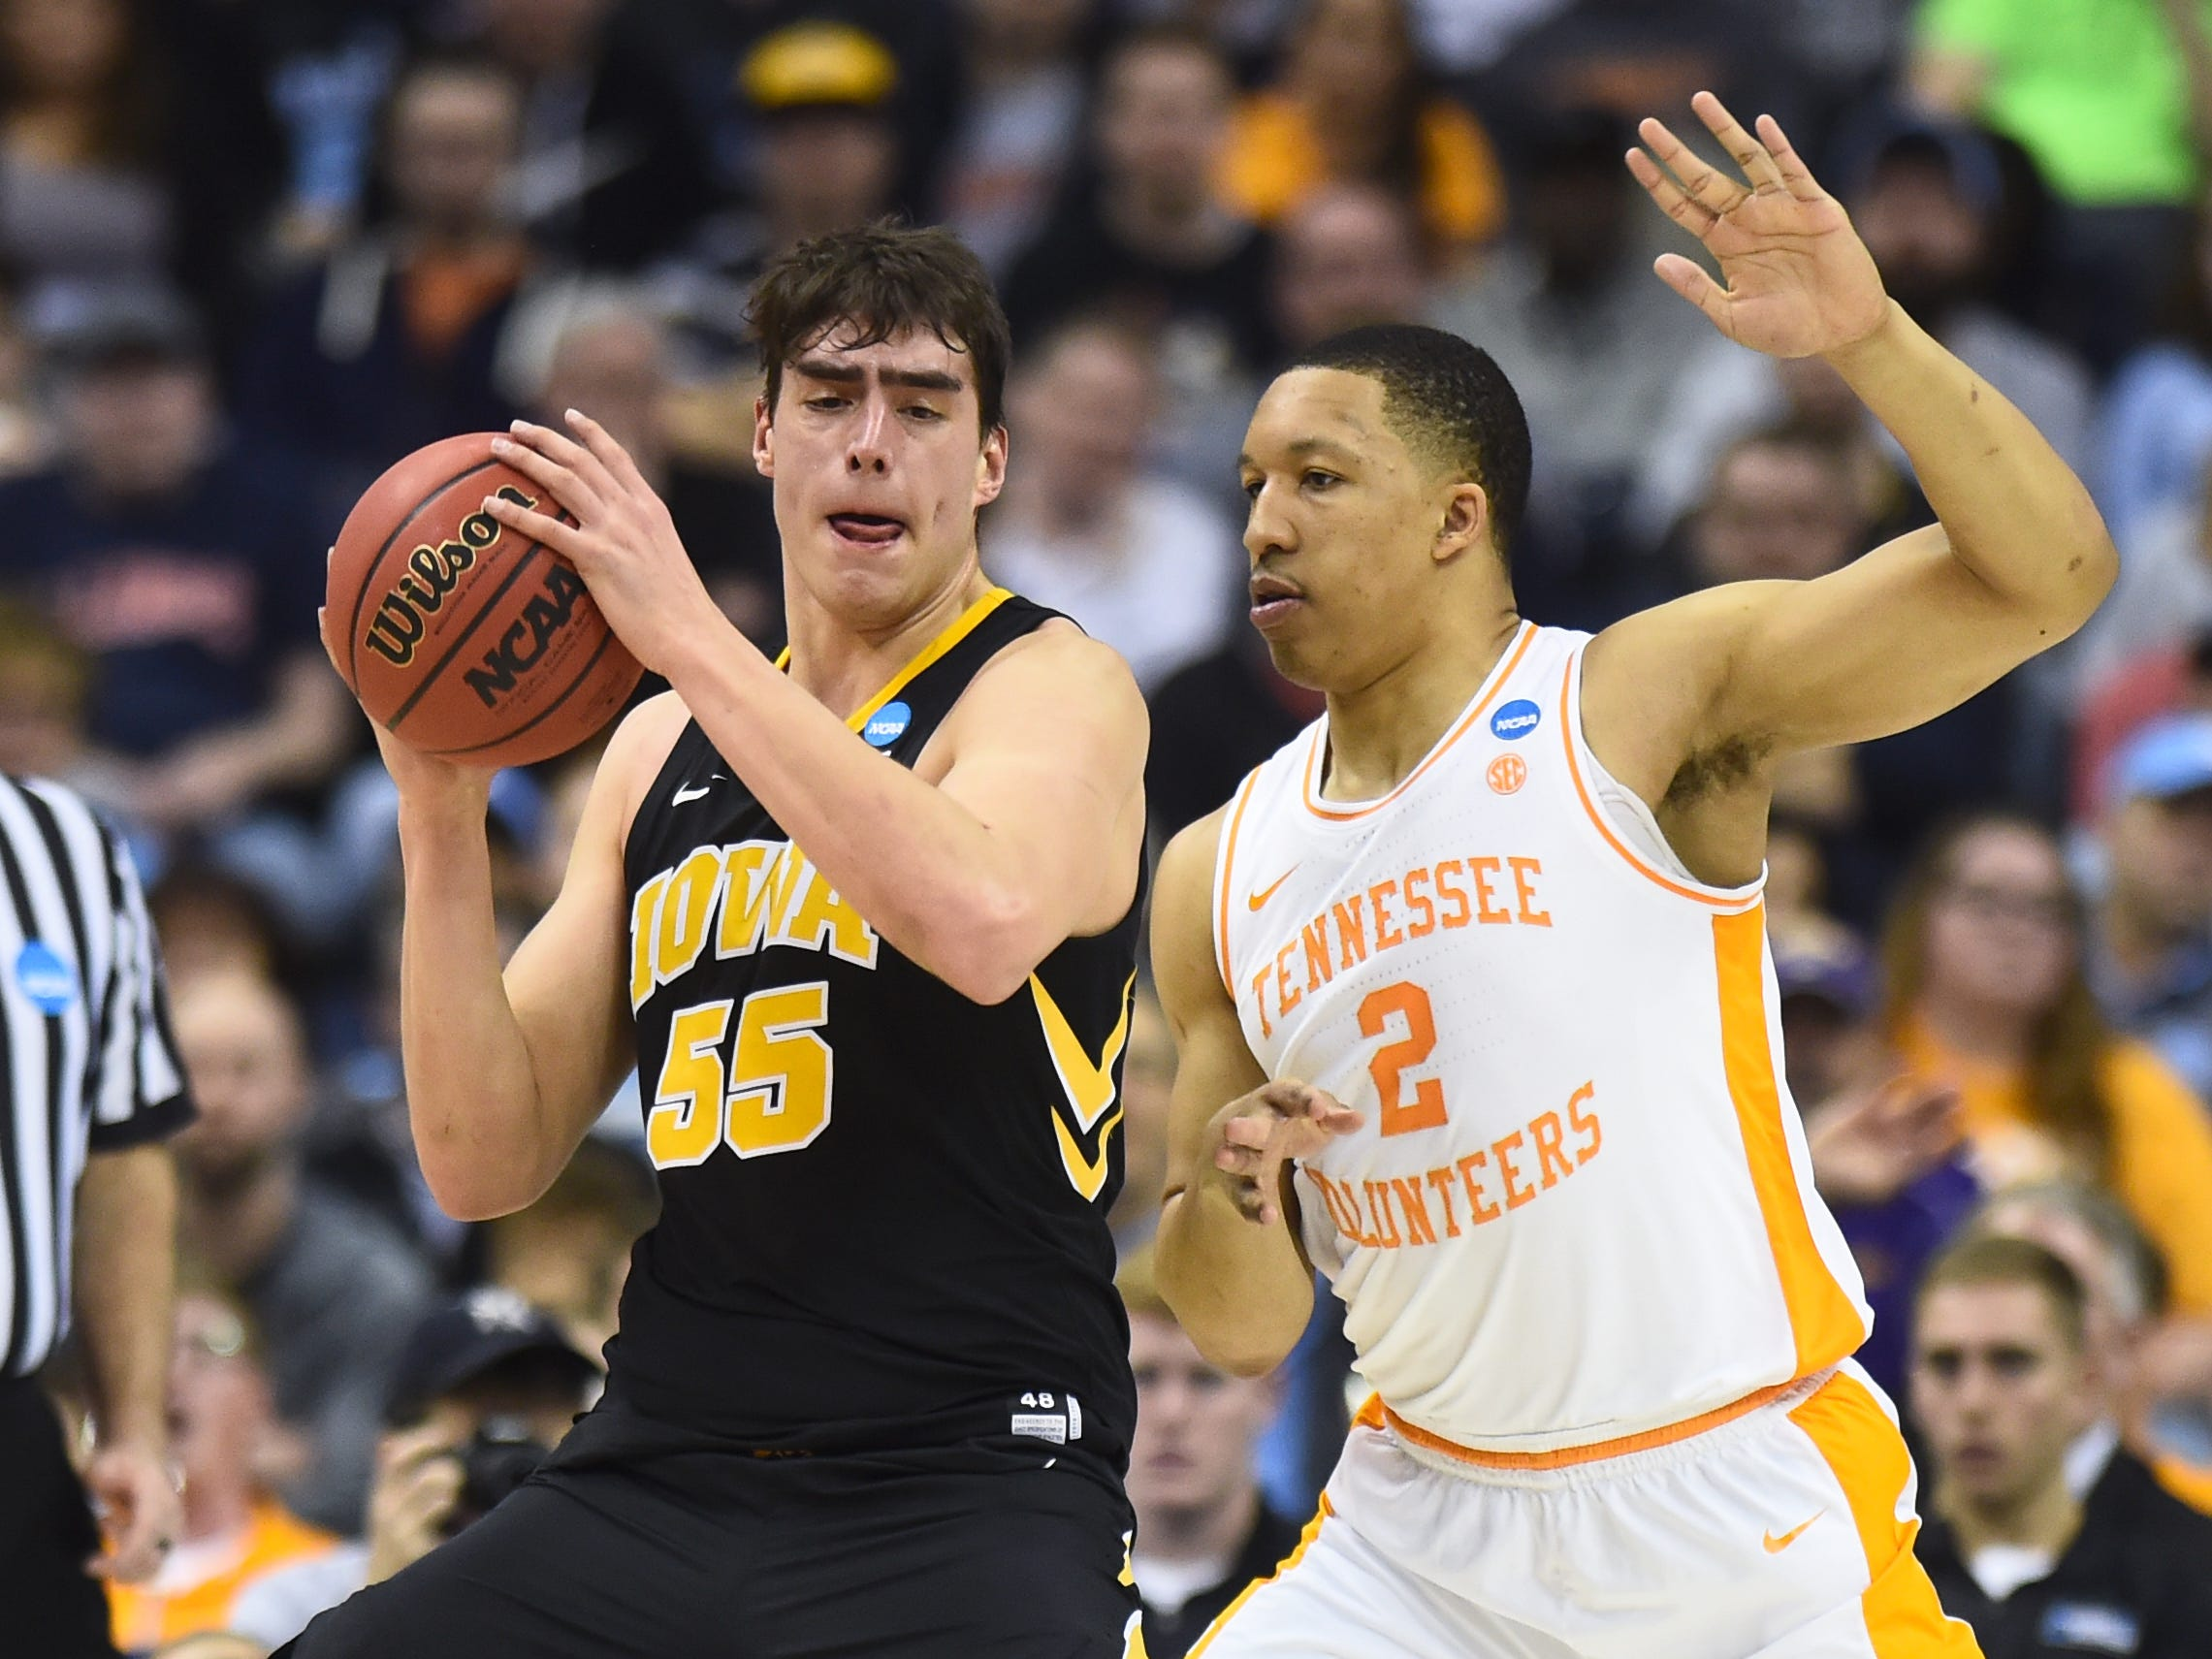 Iowa forward Ryan Kriener (15) tries to move the ball defended by Tennessee forward Grant Williams (2) during the firt half of the second-round game of the NCAA Tournament at Nationwide Arena in Columbus, Ohio, Sunday, March 24, 2019.